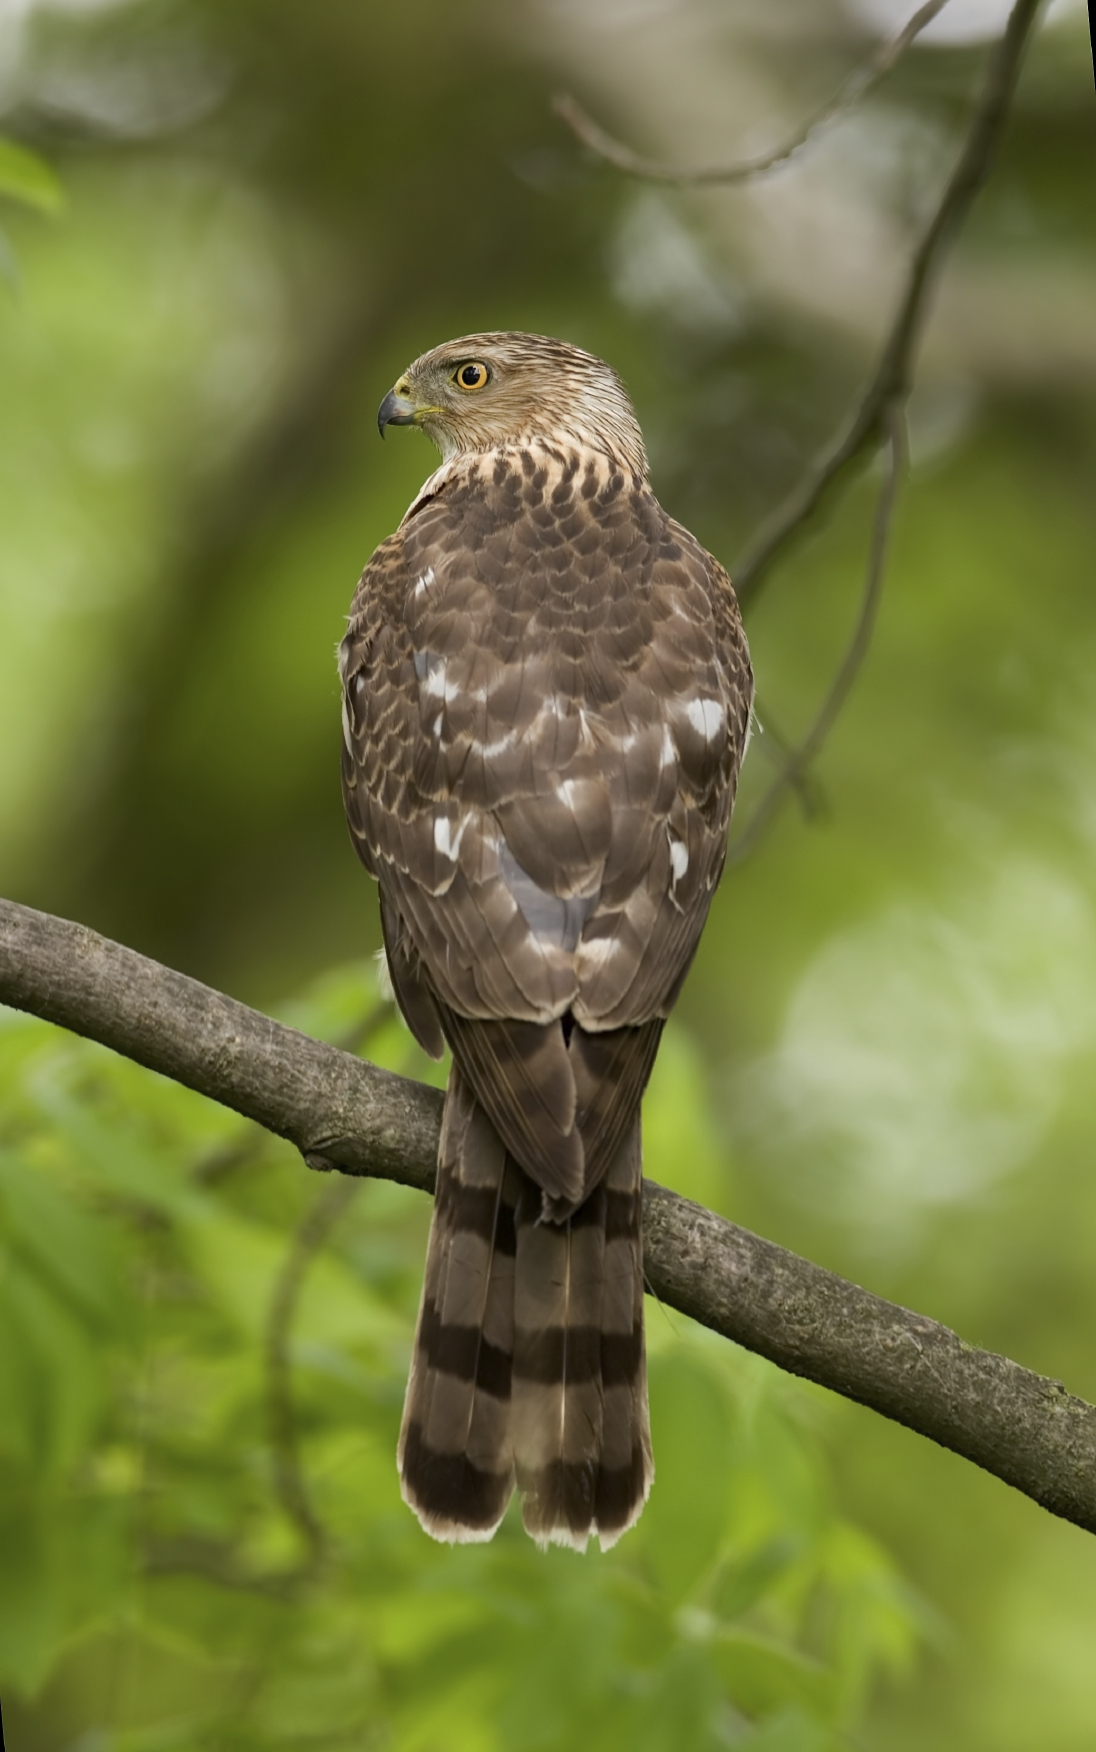 Cooper's hawk sitting on a tree branch.